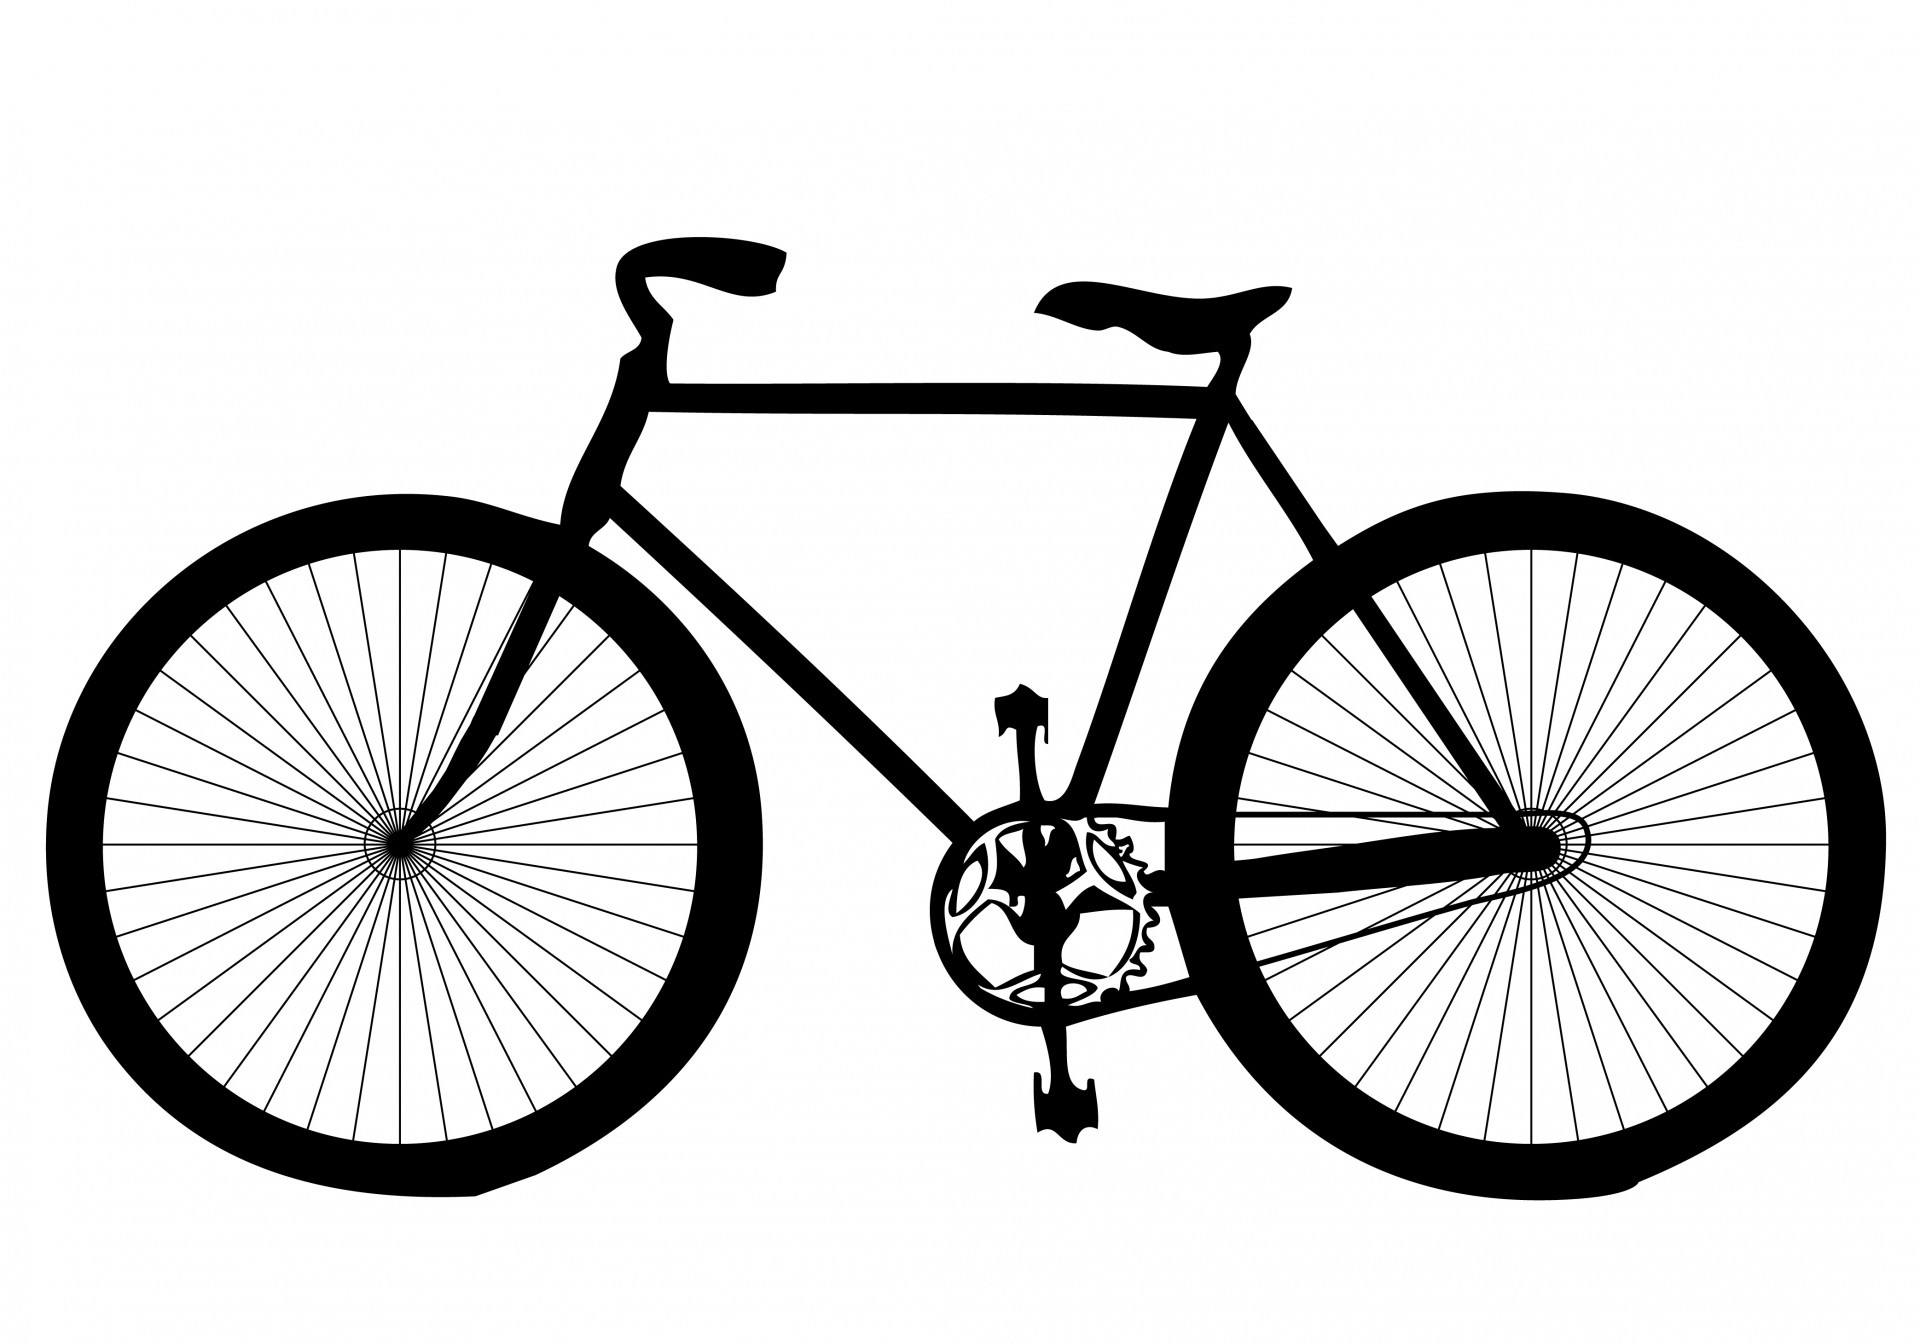 Bicycle free stock photo. Cycle clipart